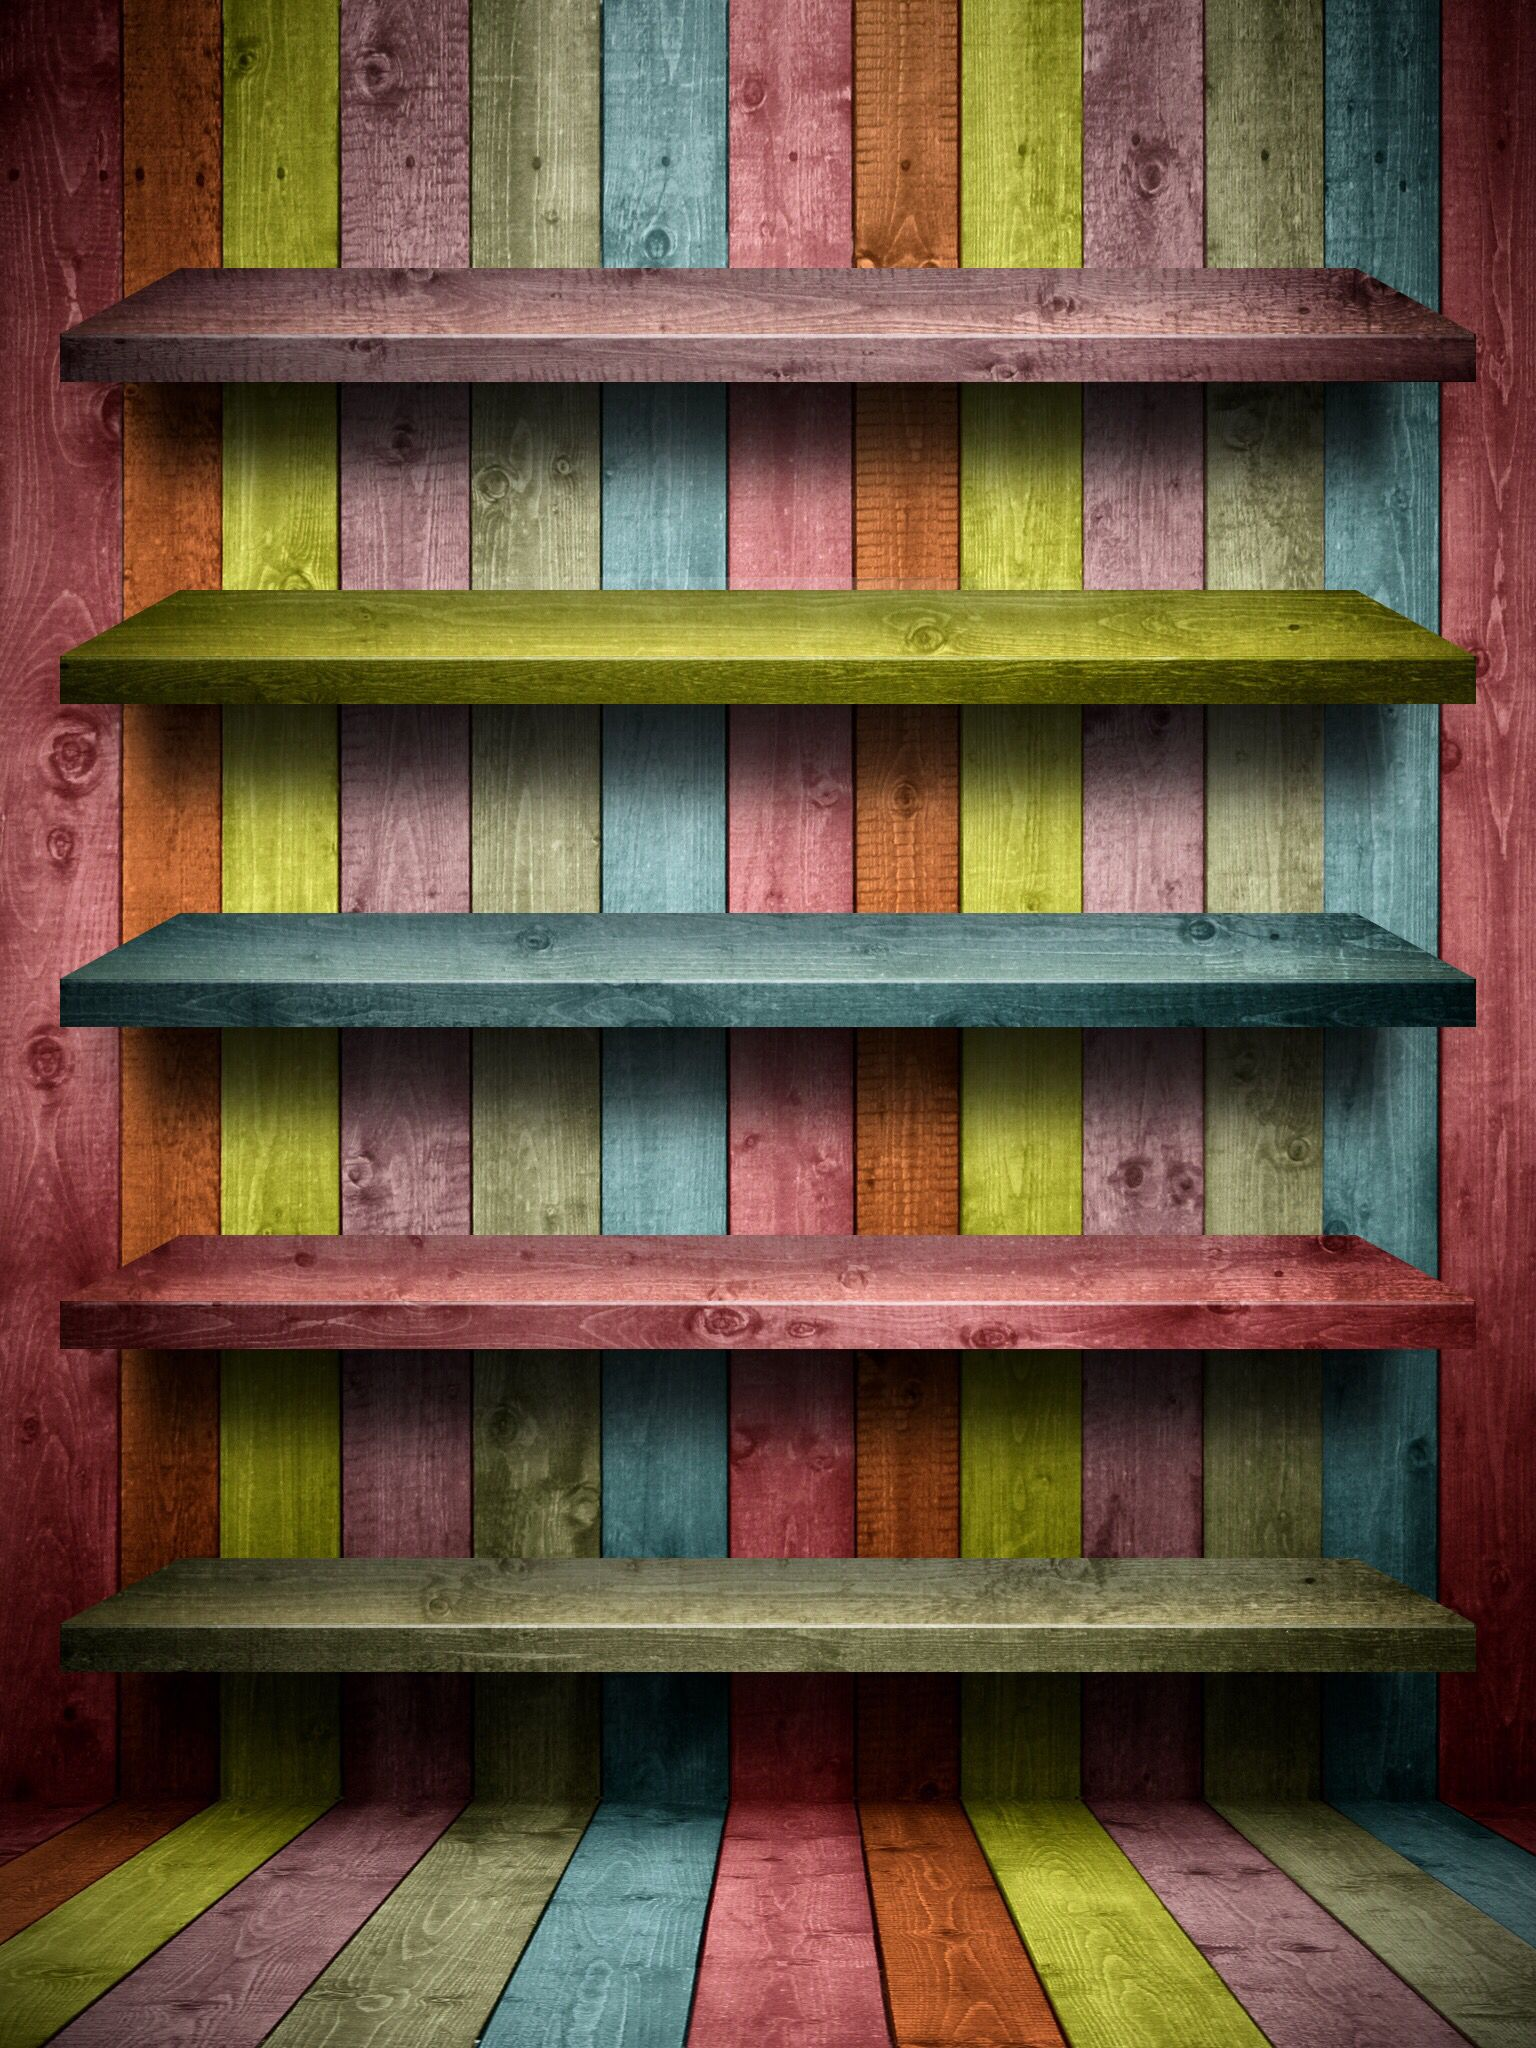 Wallpaper App Shelves Wallpaper Shelves Desktop